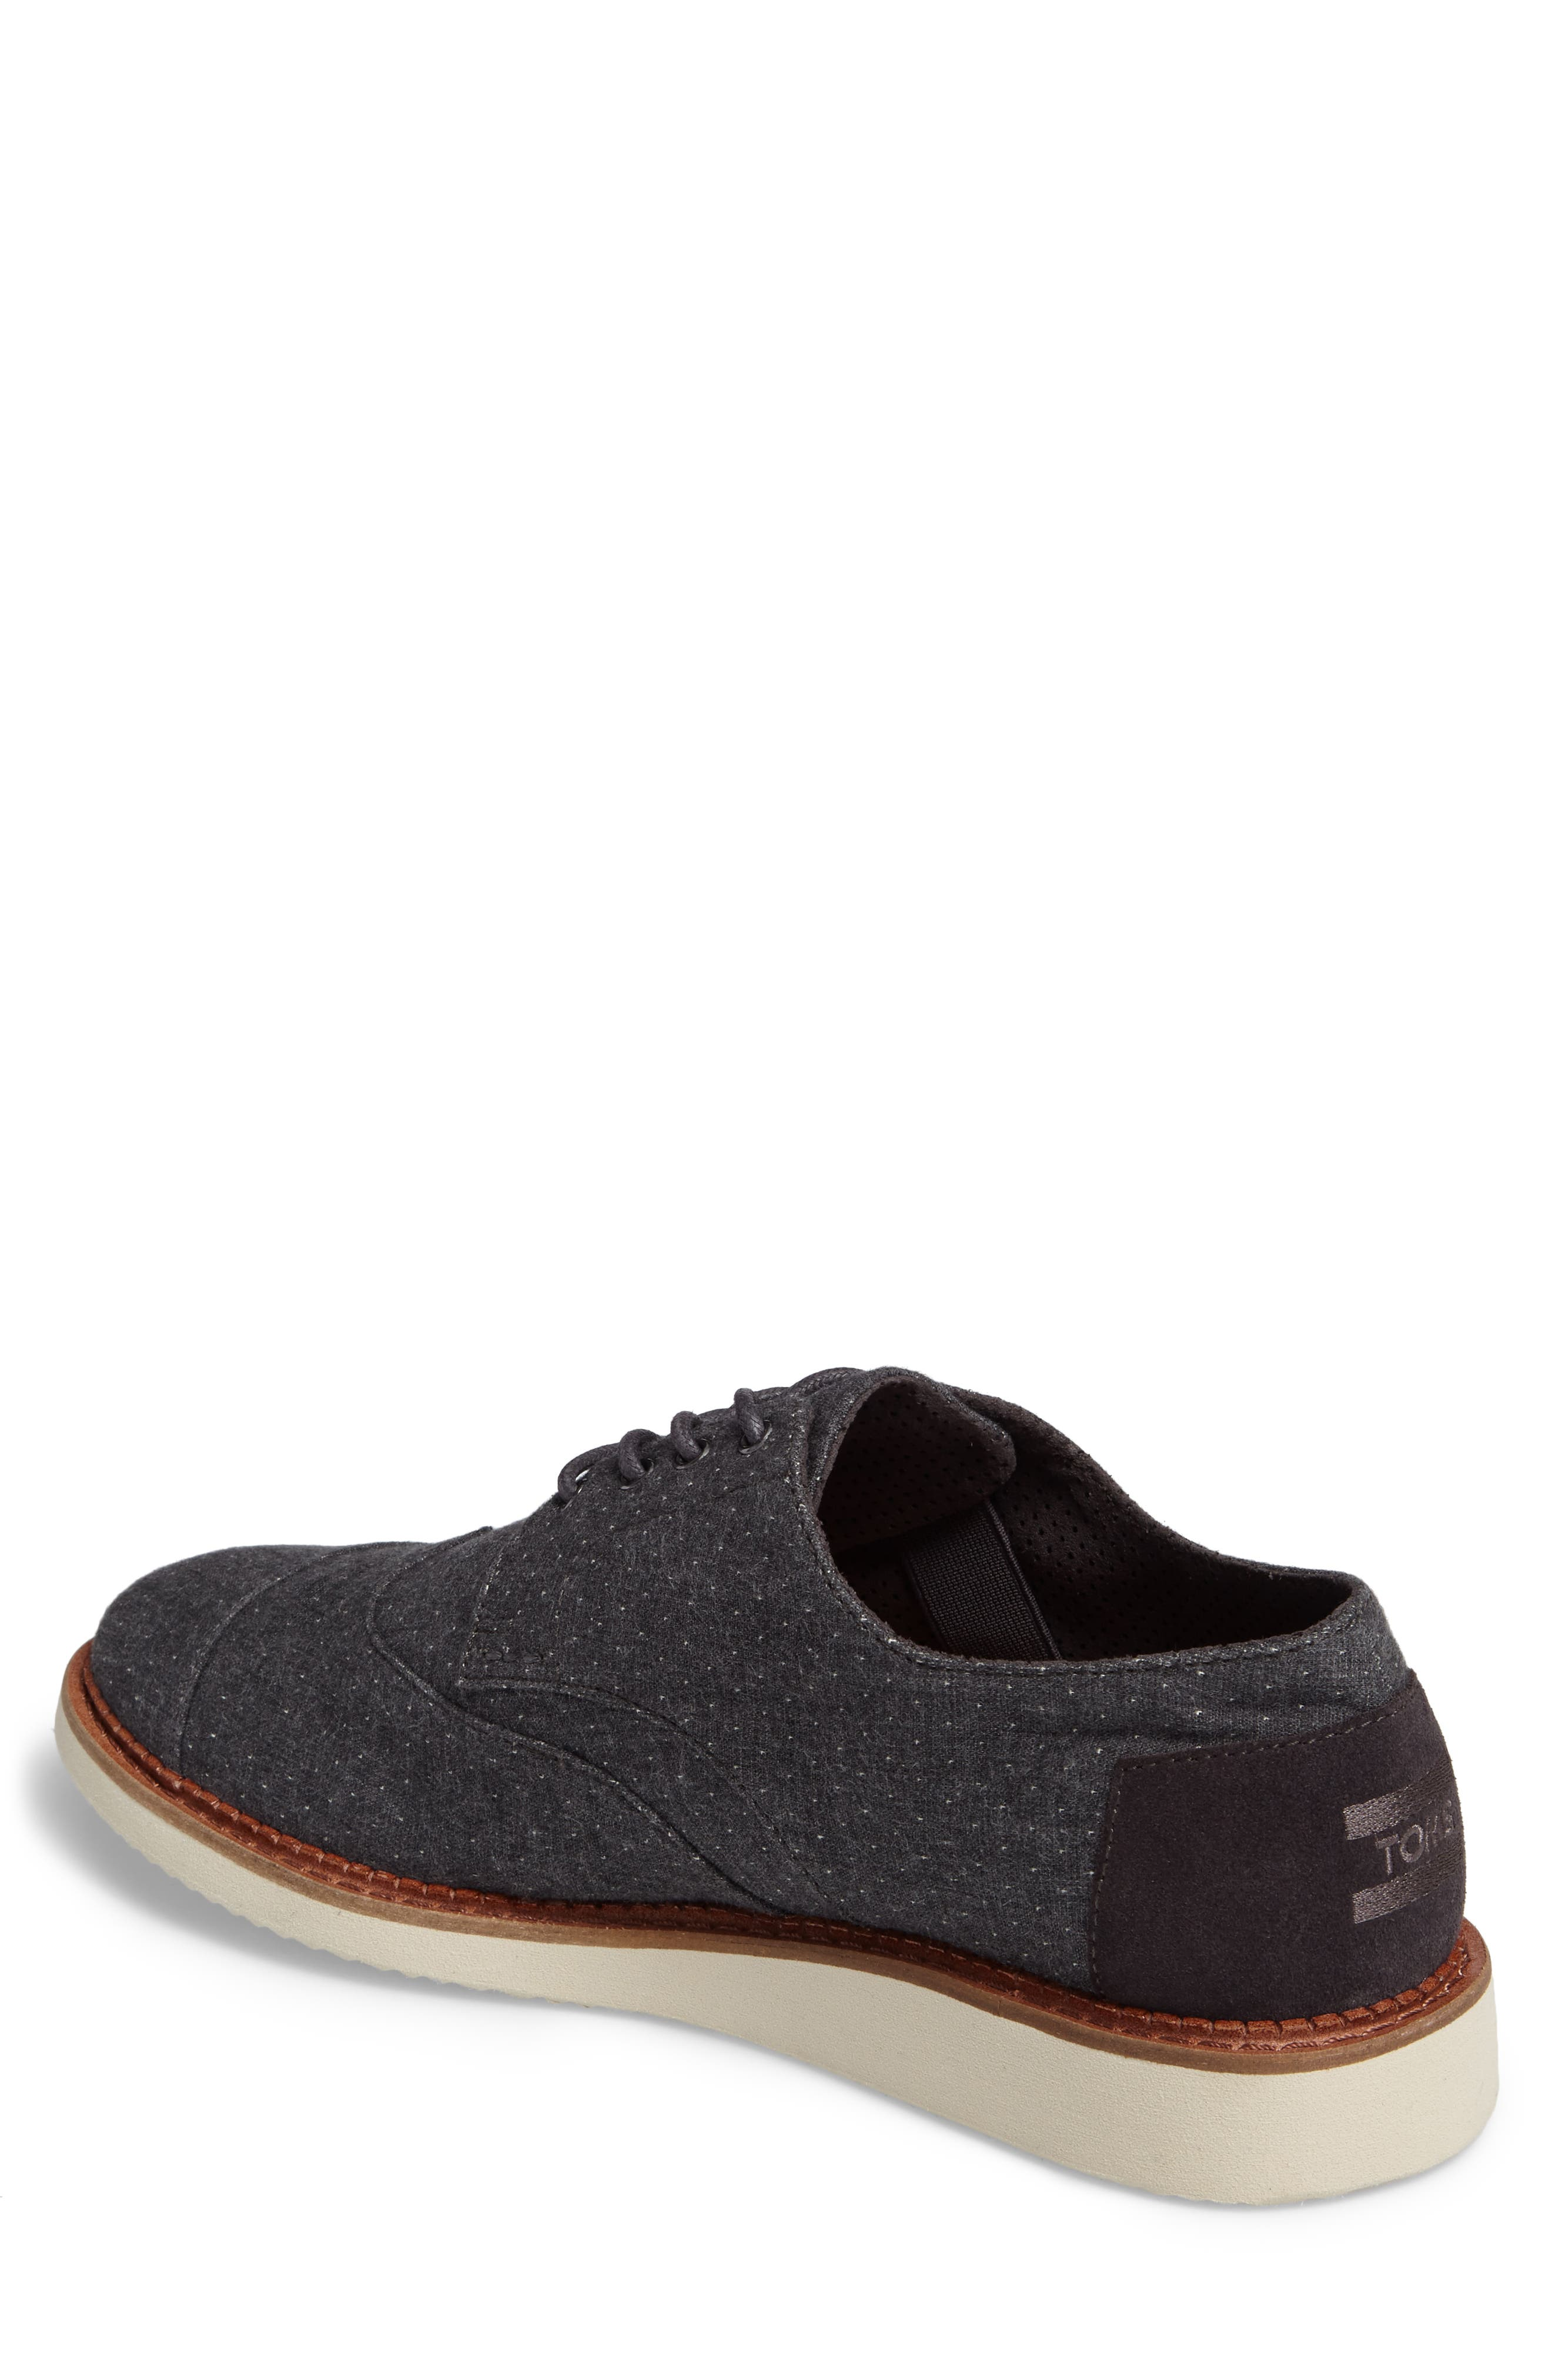 'Classic Brogue' Cotton Twill Derby,                             Alternate thumbnail 2, color,                             Grey